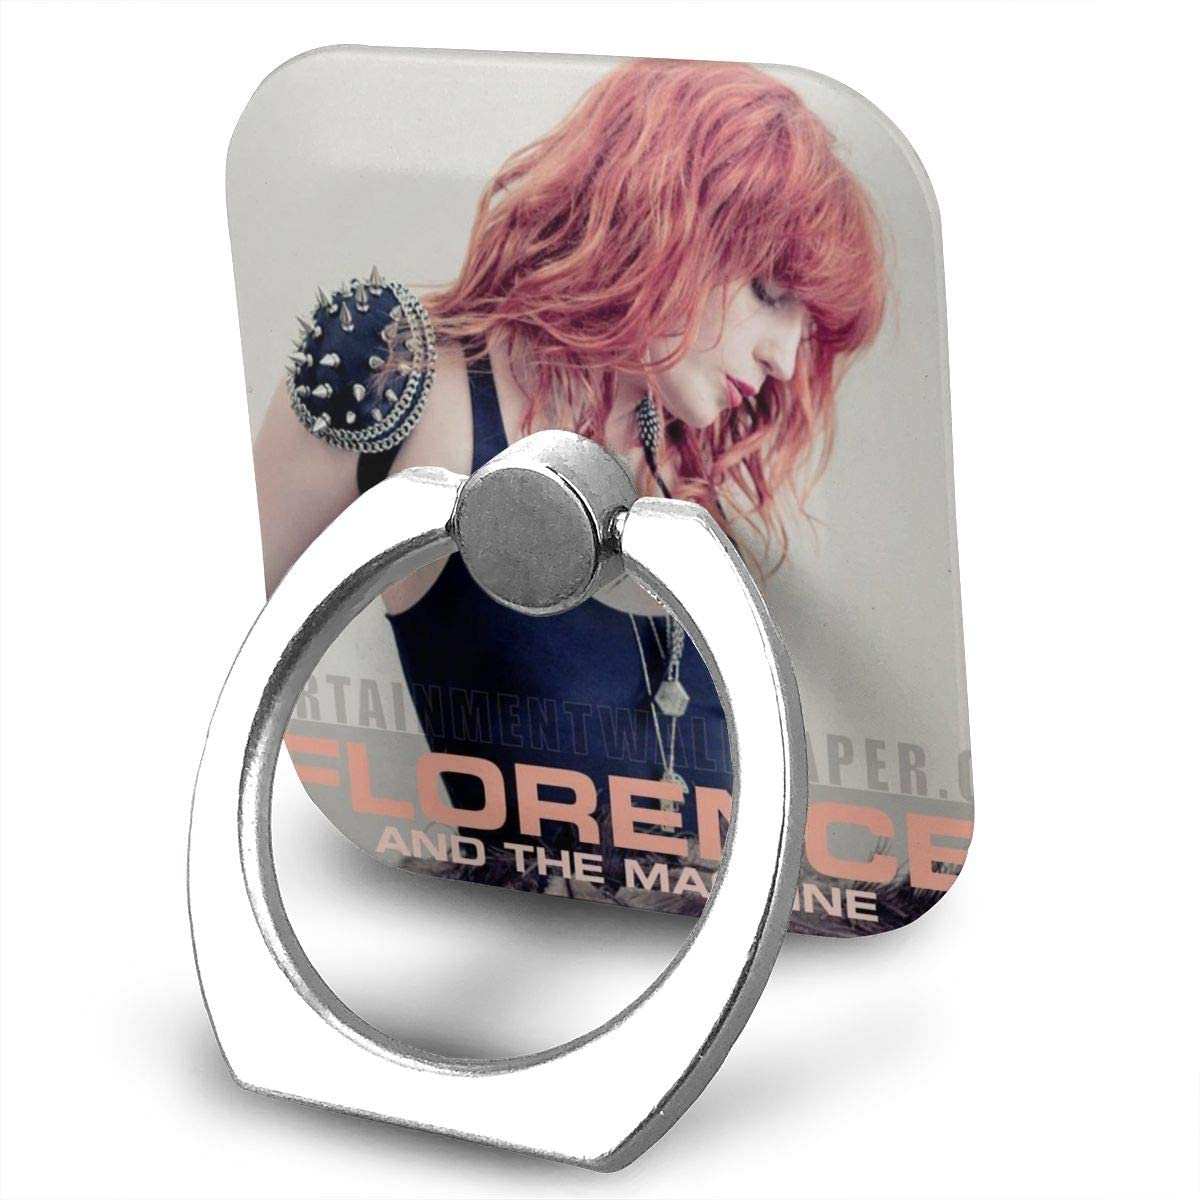 Florence and The Machine Phone Holder Smartphone Grip Stand Holder 360 Degree Rotating Sticky Finger Ring